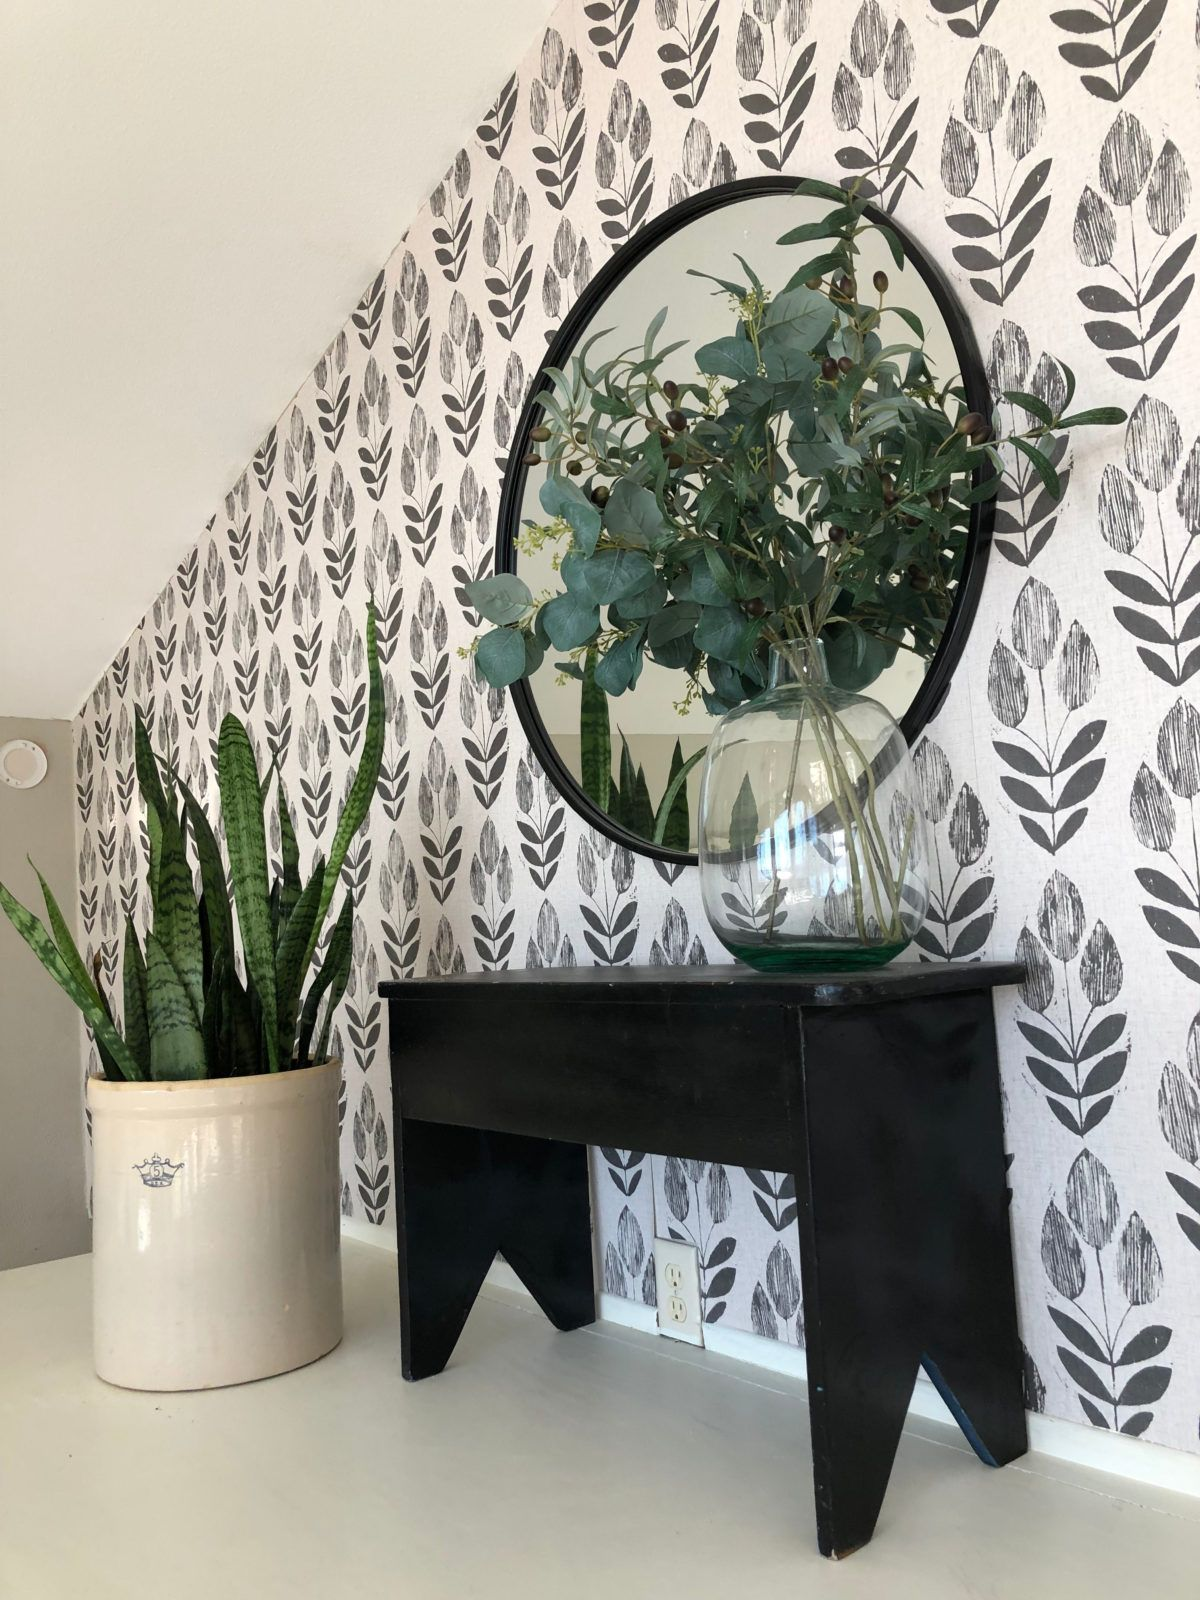 Home Decor Trends For 2020 * Hip & Humble Style in 2020 | Trending decor, Home  decor trends, Home decor